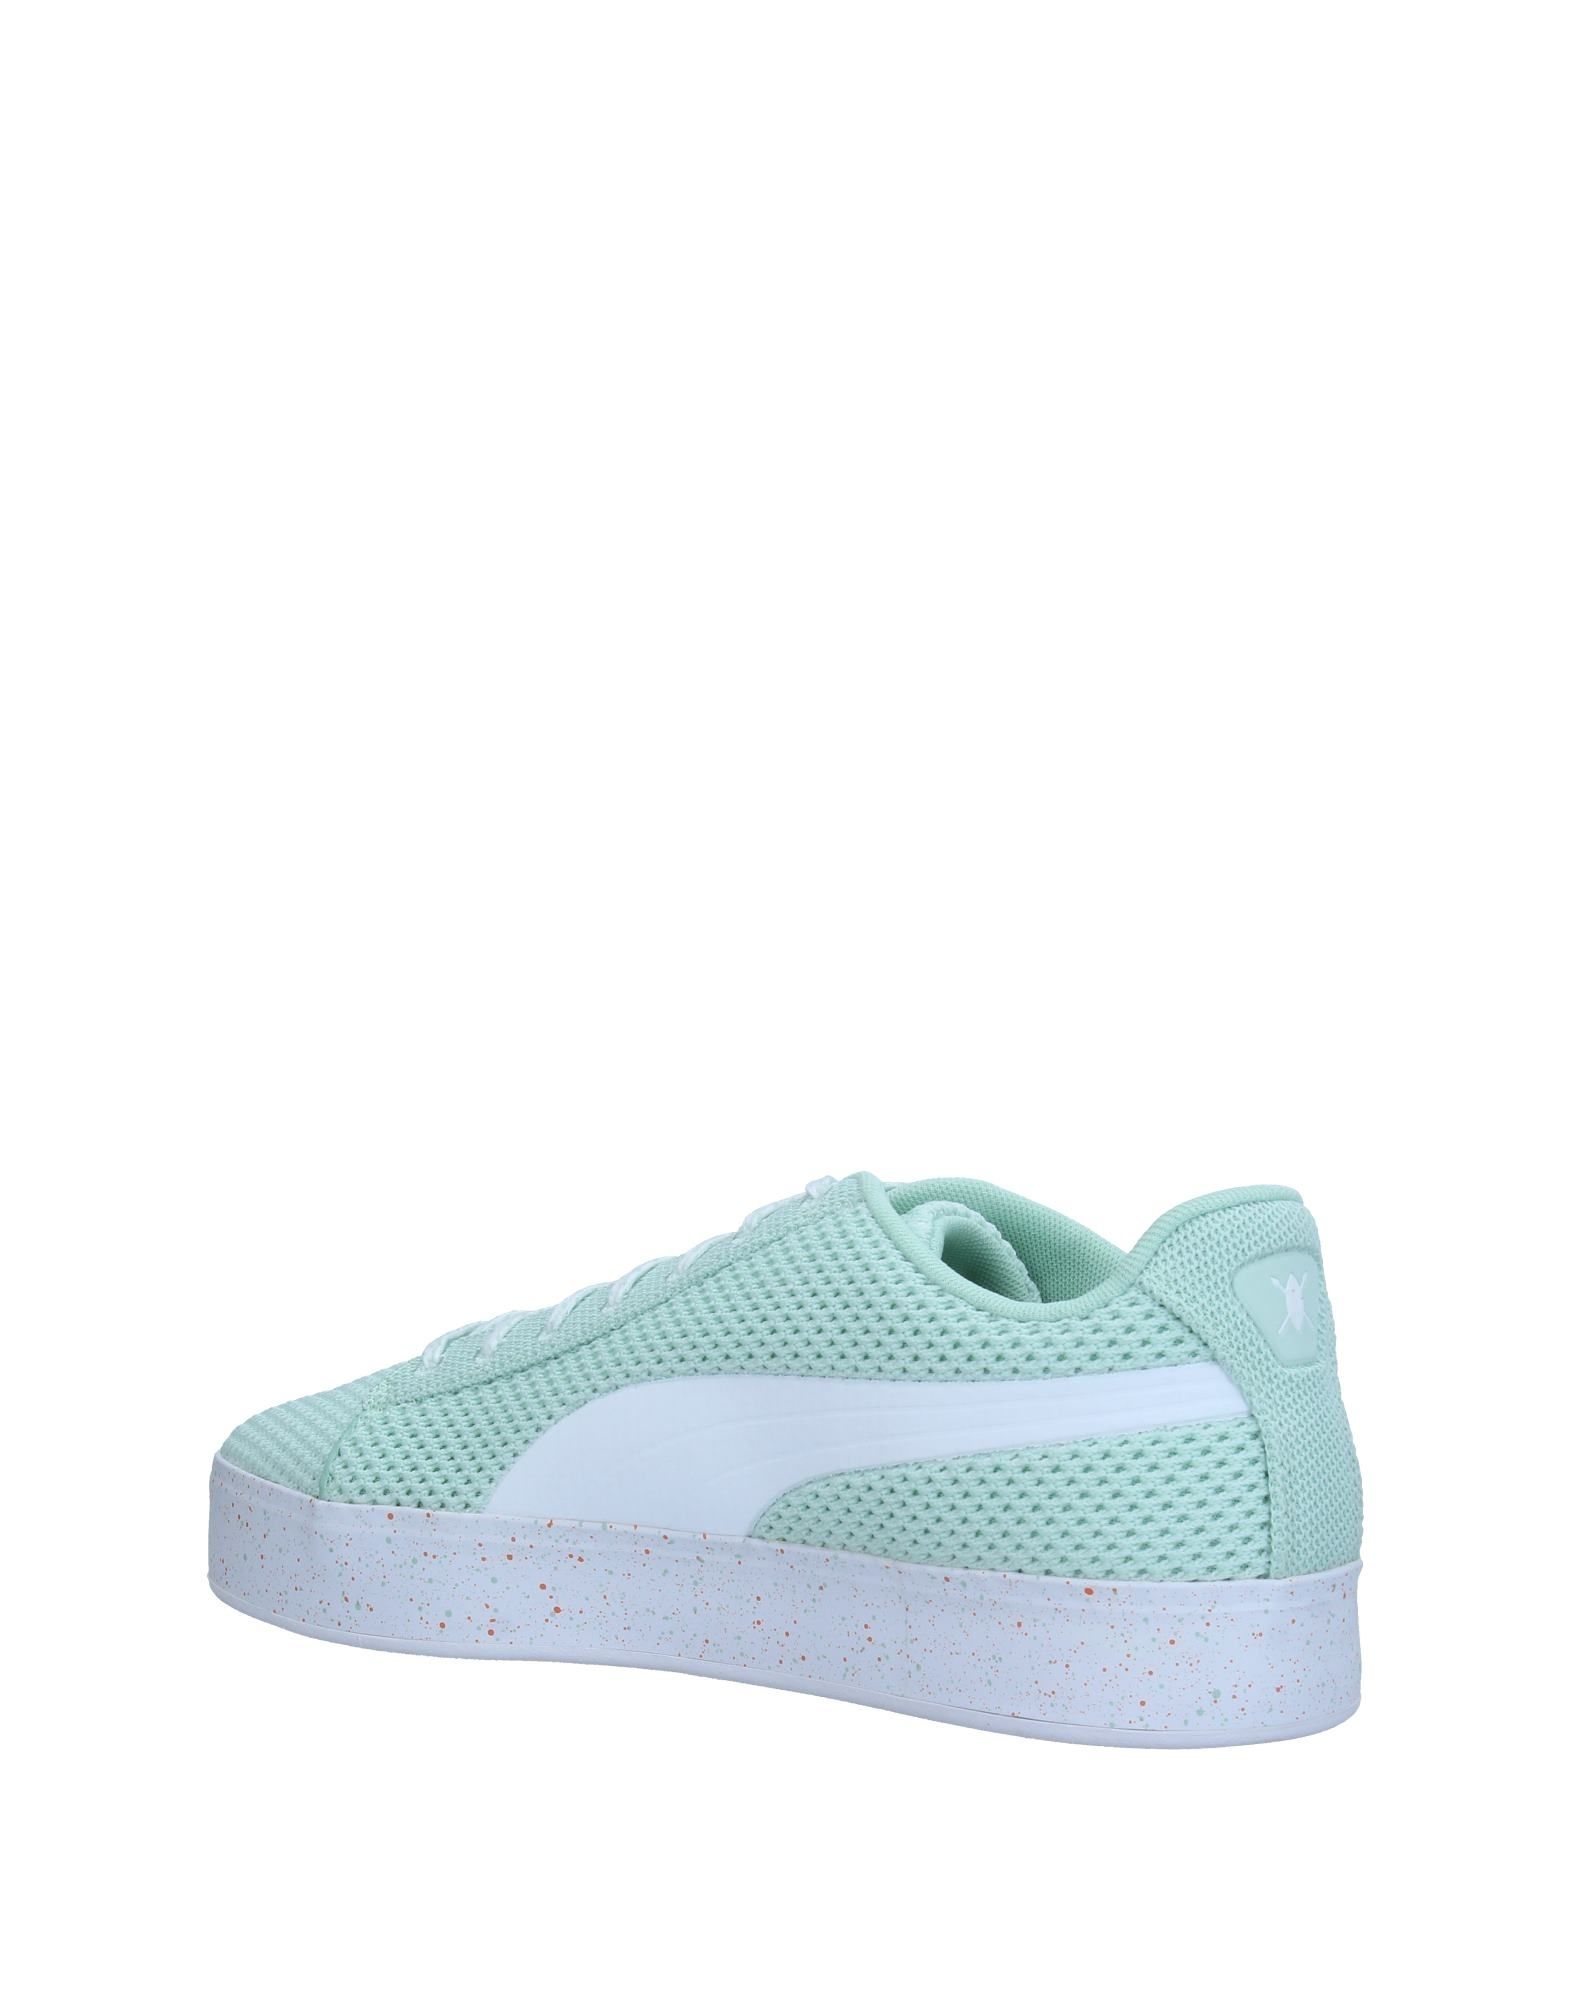 Sneakers Puma X Daily Paper Homme - Sneakers Puma X Daily Paper sur